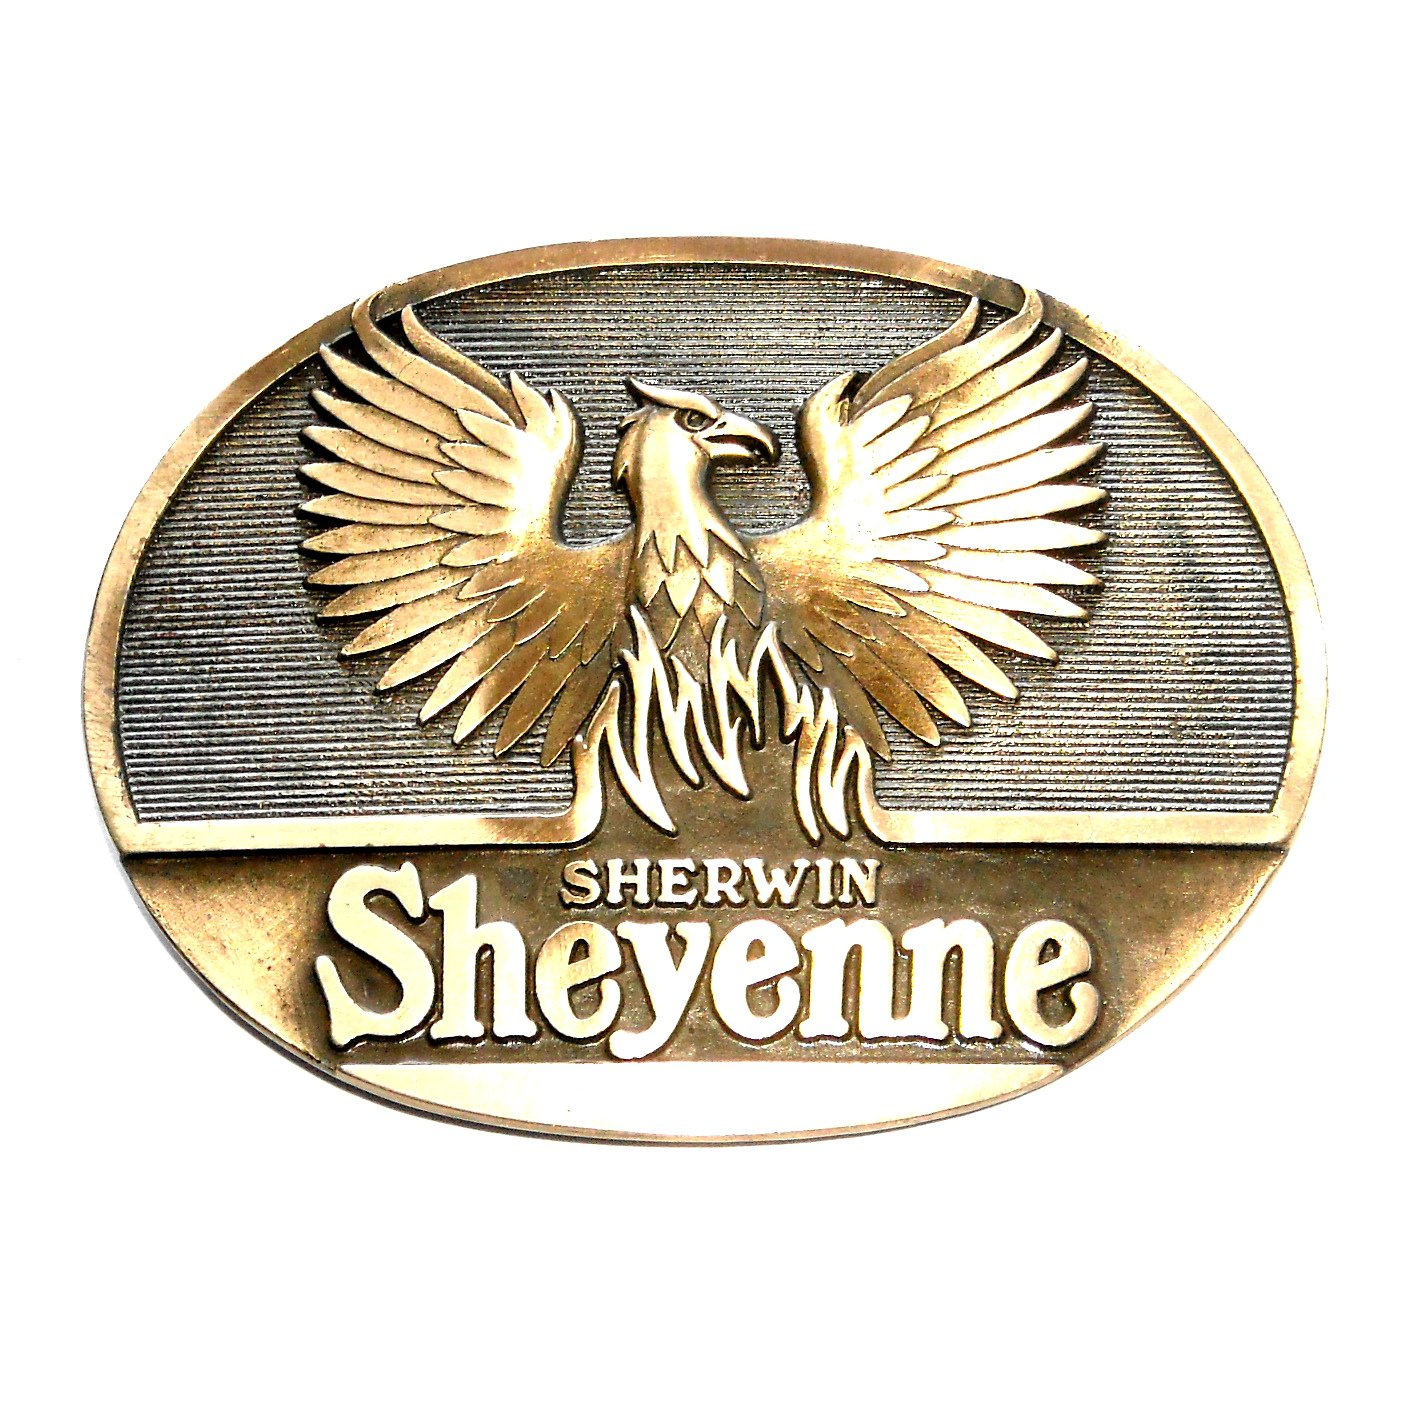 Sherwin Sheyenne Award Design Brass Belt Buckle